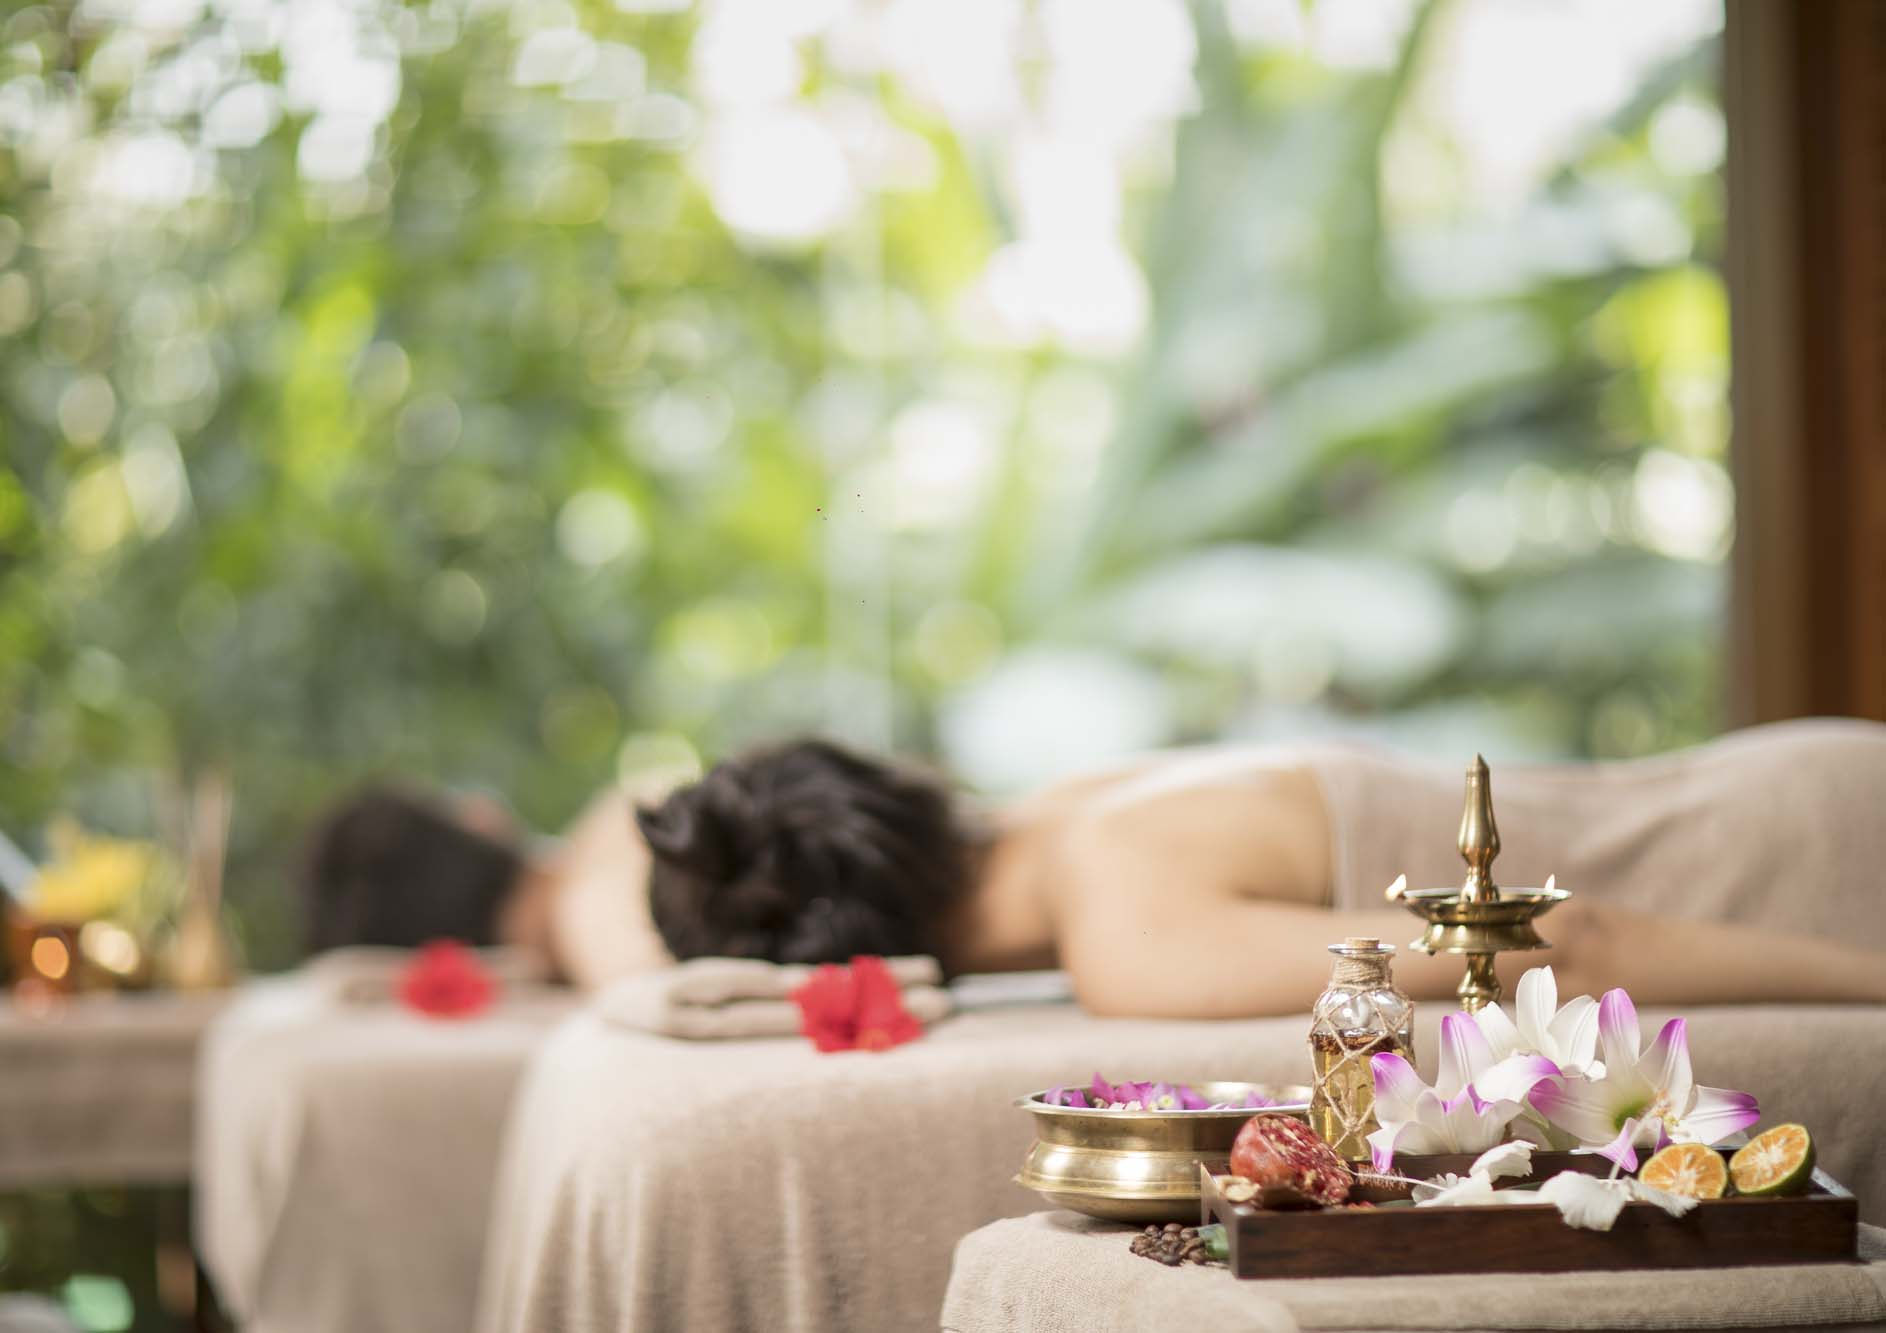 Young-man-and-woman-lying-down-on-massage-beds-at-Asian-luxury-spa-and-wellness-center